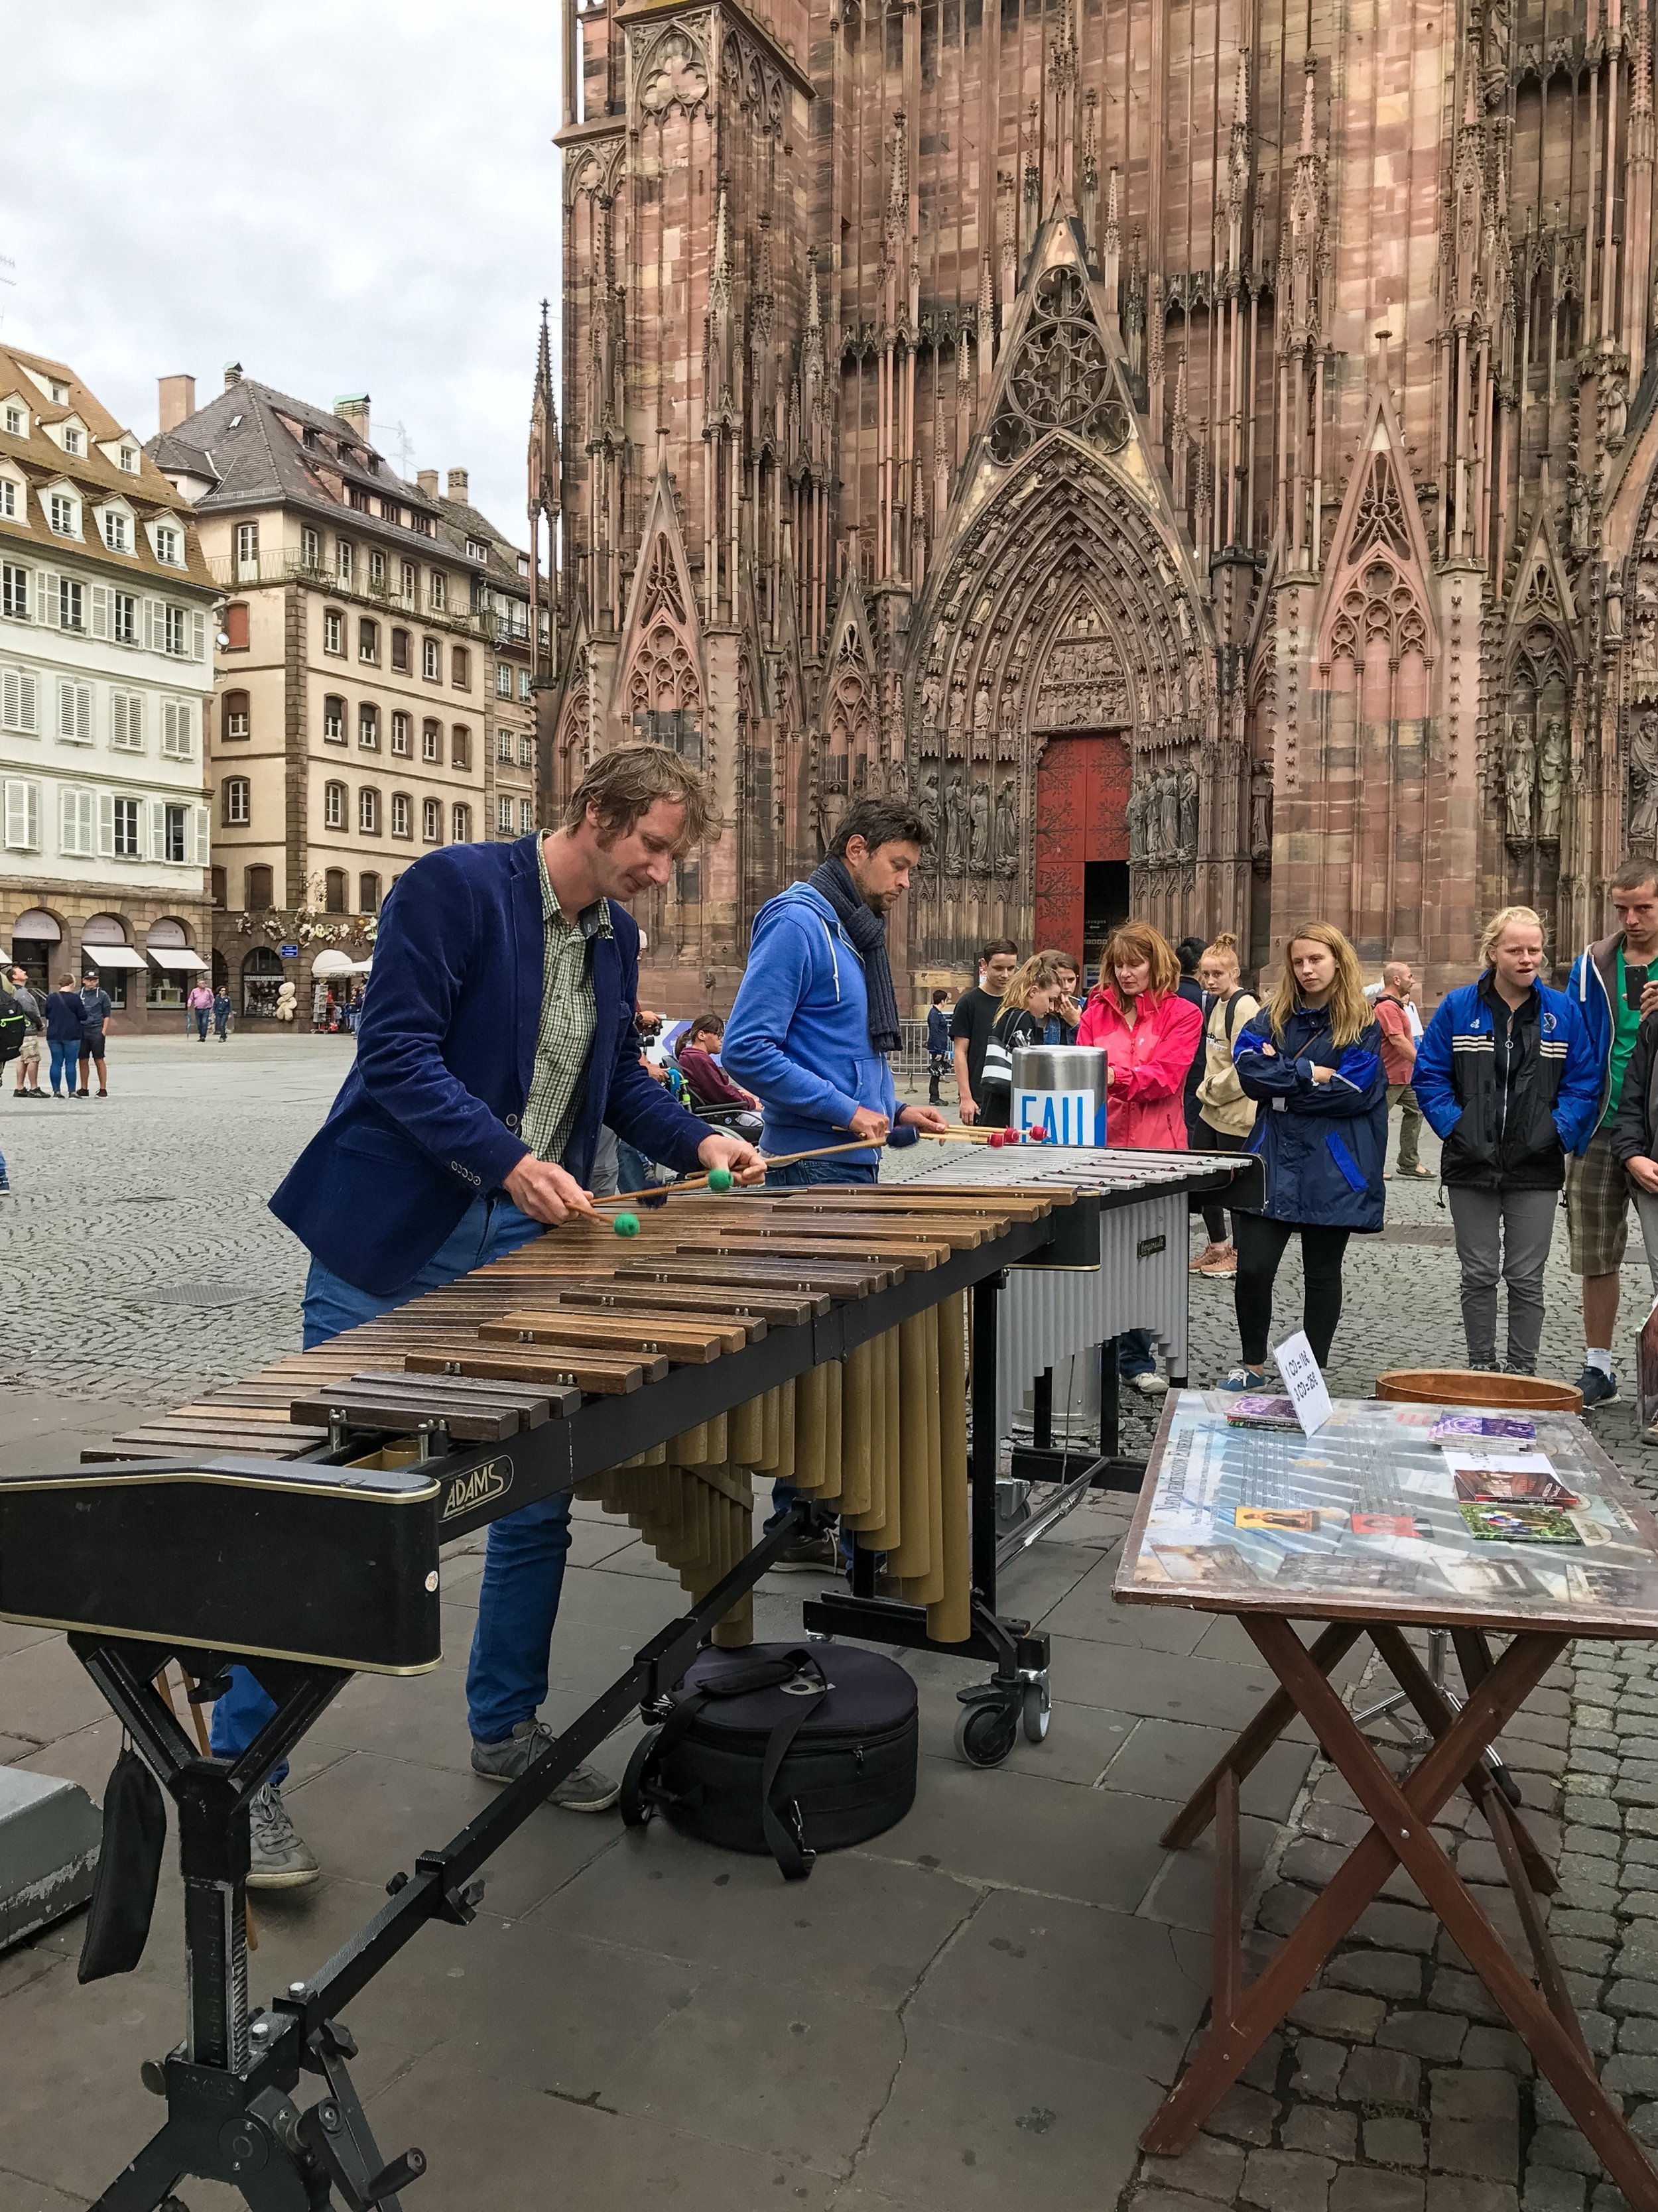 The most amazing street musicians